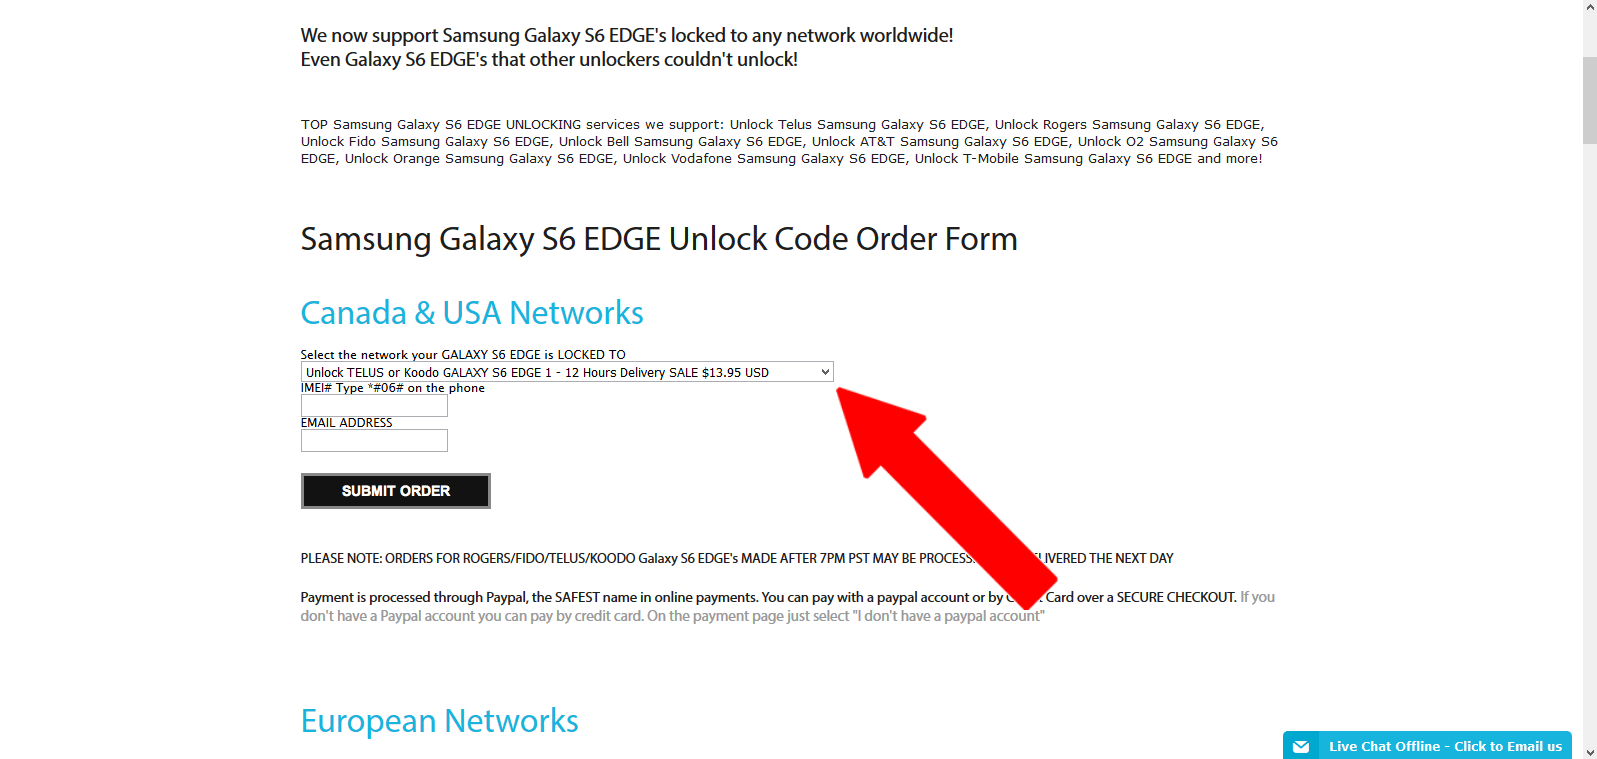 How to Unlock your Samsung Galaxy S6 Edge With Codes